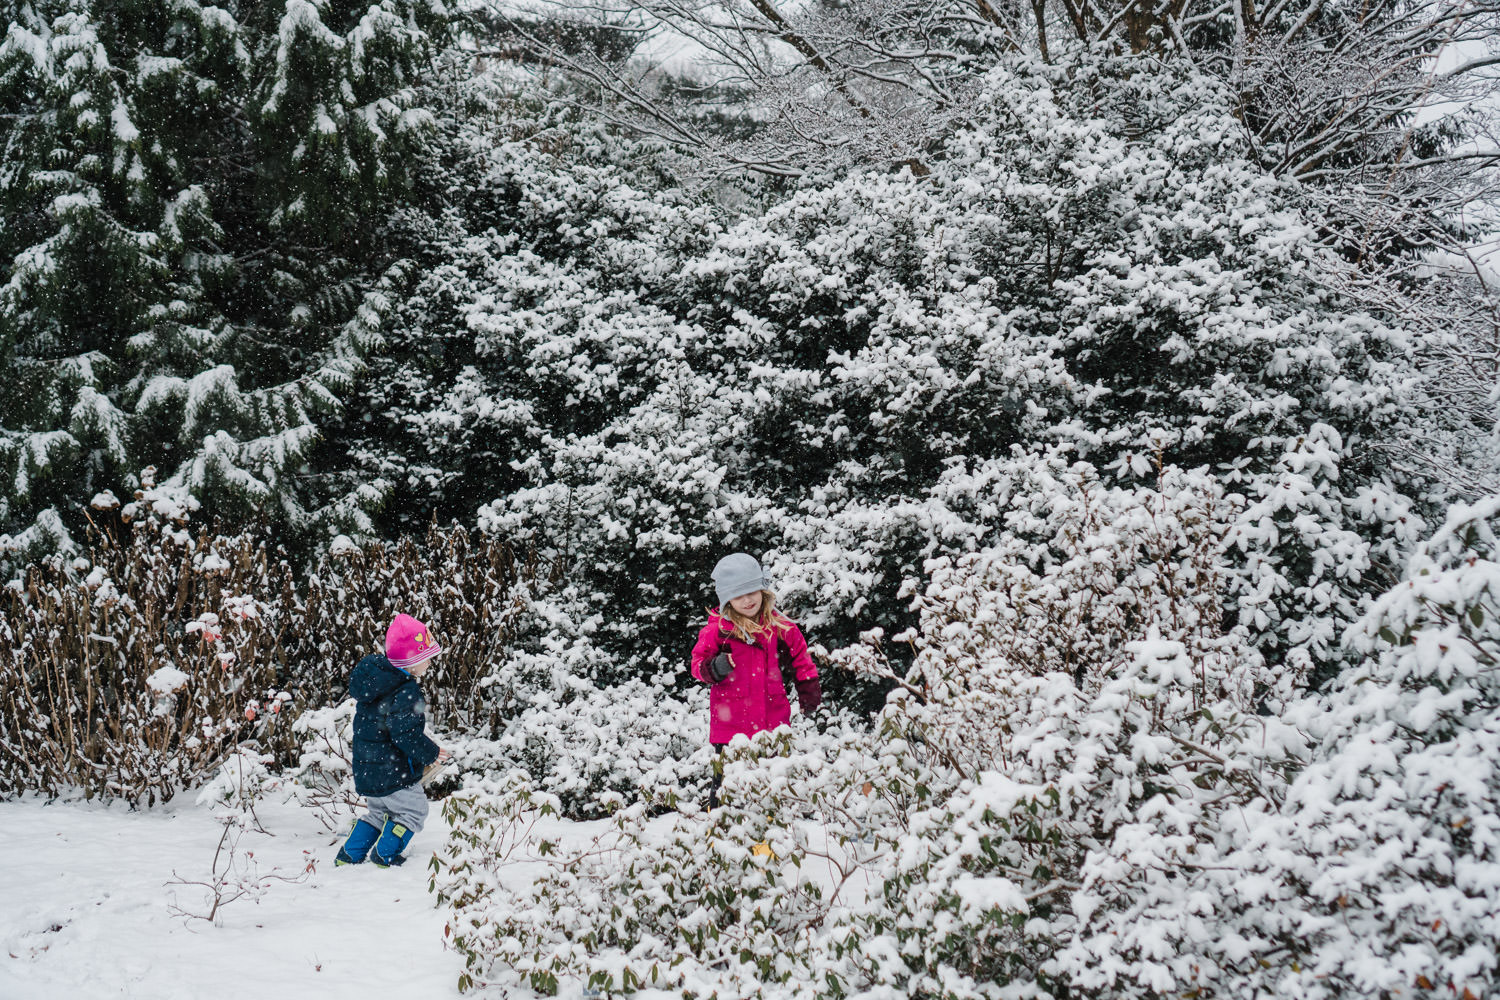 Kids walk through snowy bushes at Planting Fields.